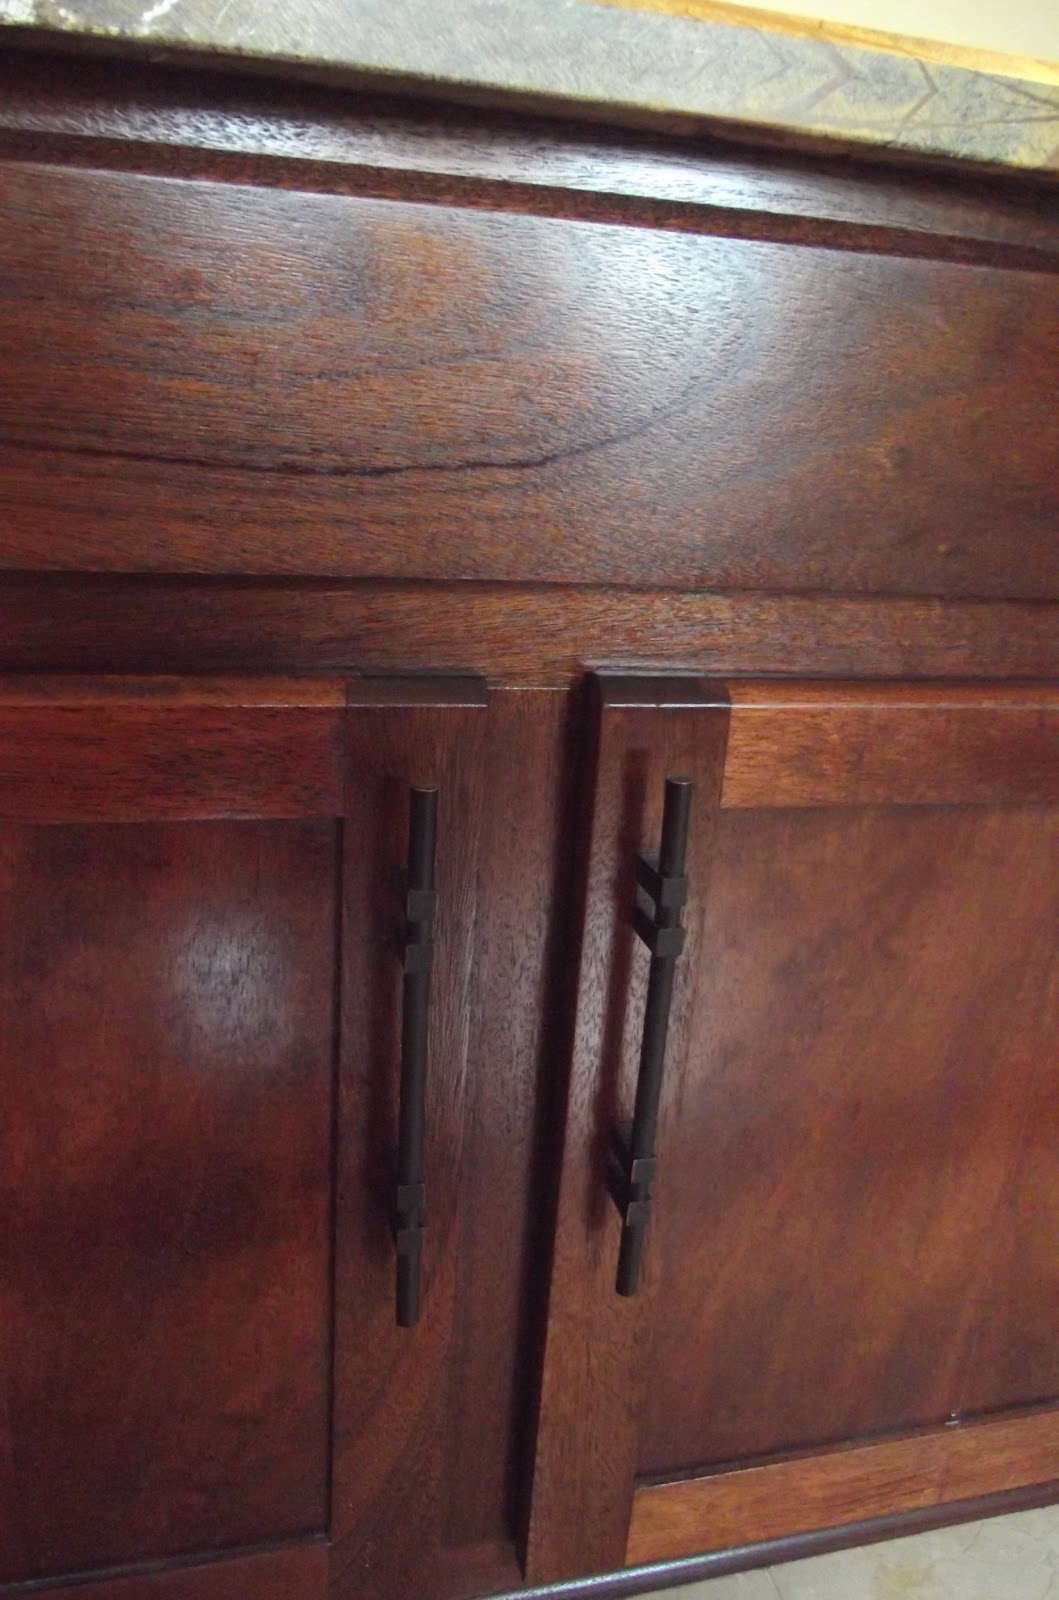 1600 #694038 Late In Posting But Here Are The Final Photos Of The Mahogany Doors  wallpaper Mahogany Doors Houston 46051059